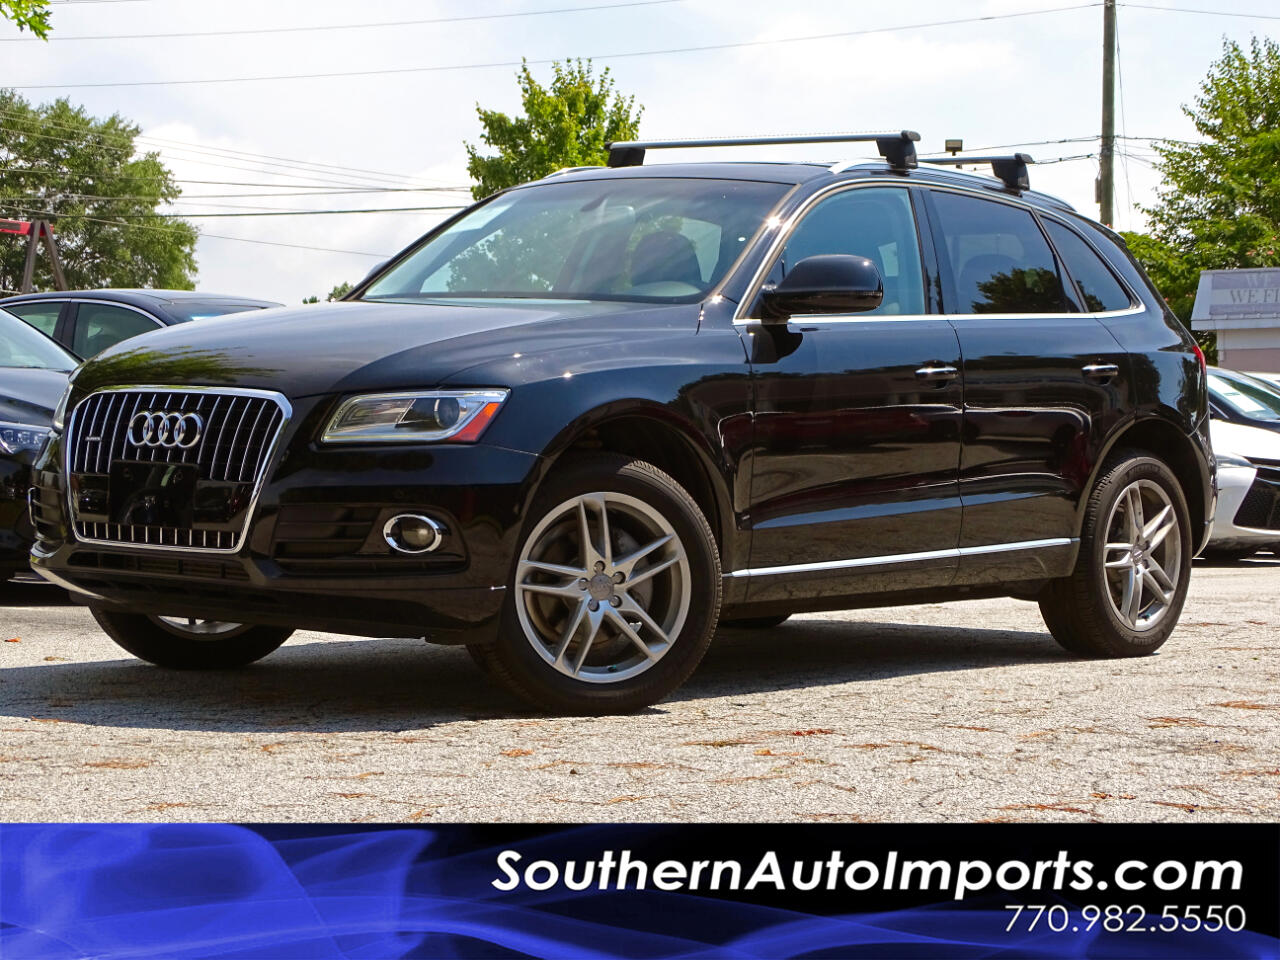 2015 Audi Q5 AWD w/Premium Plus + Tech Pkg